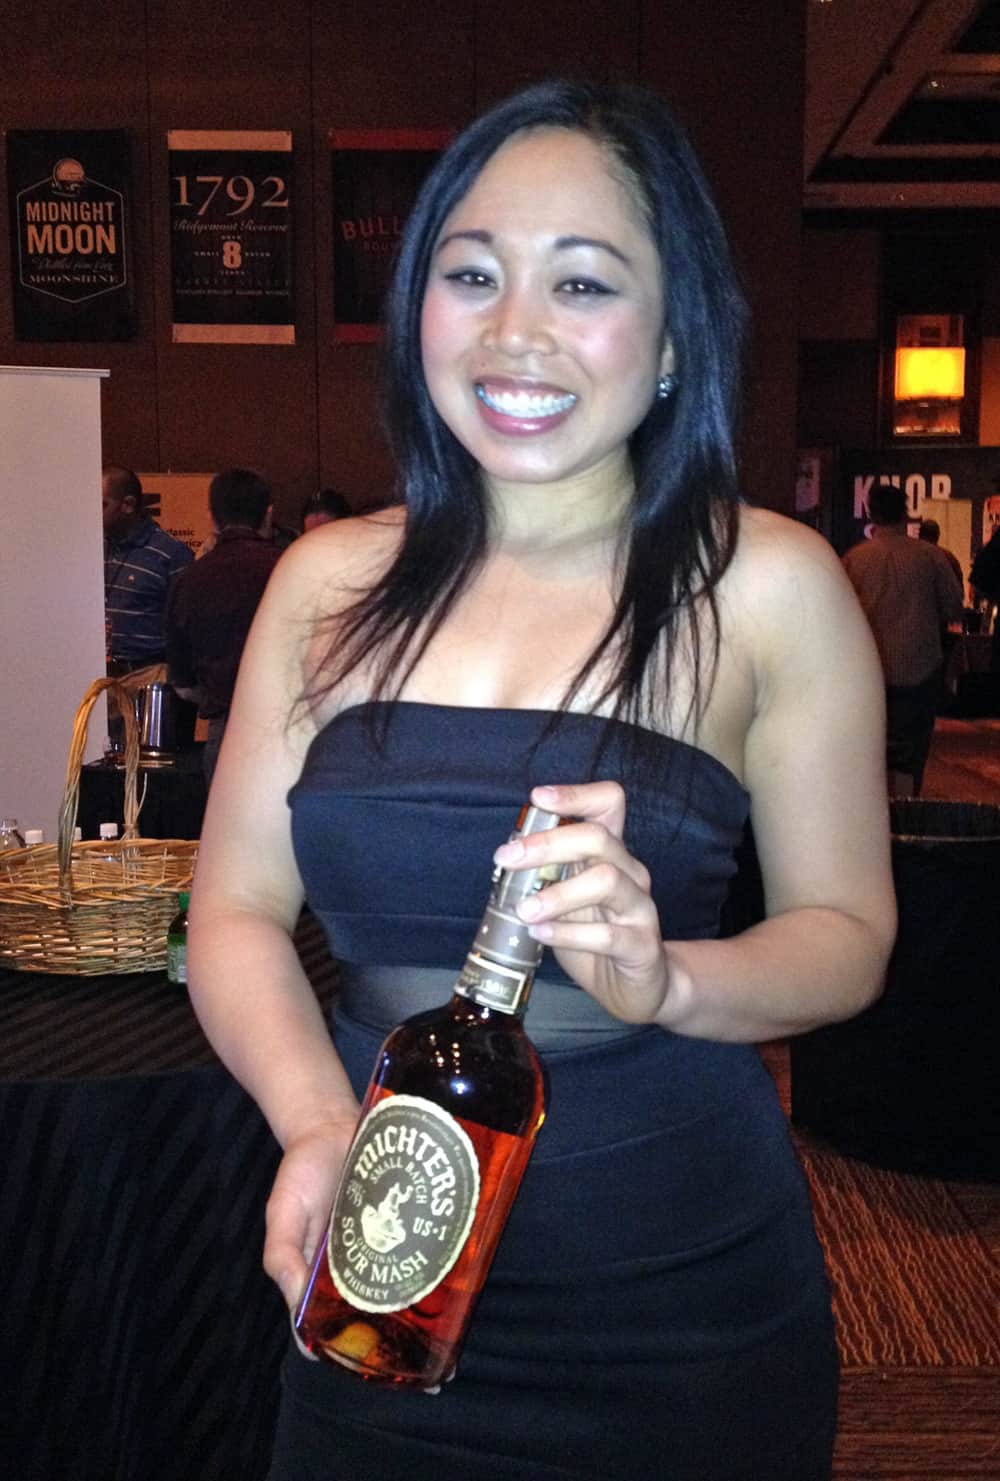 WhiskeyFest2014 - Mitchers Whiskey